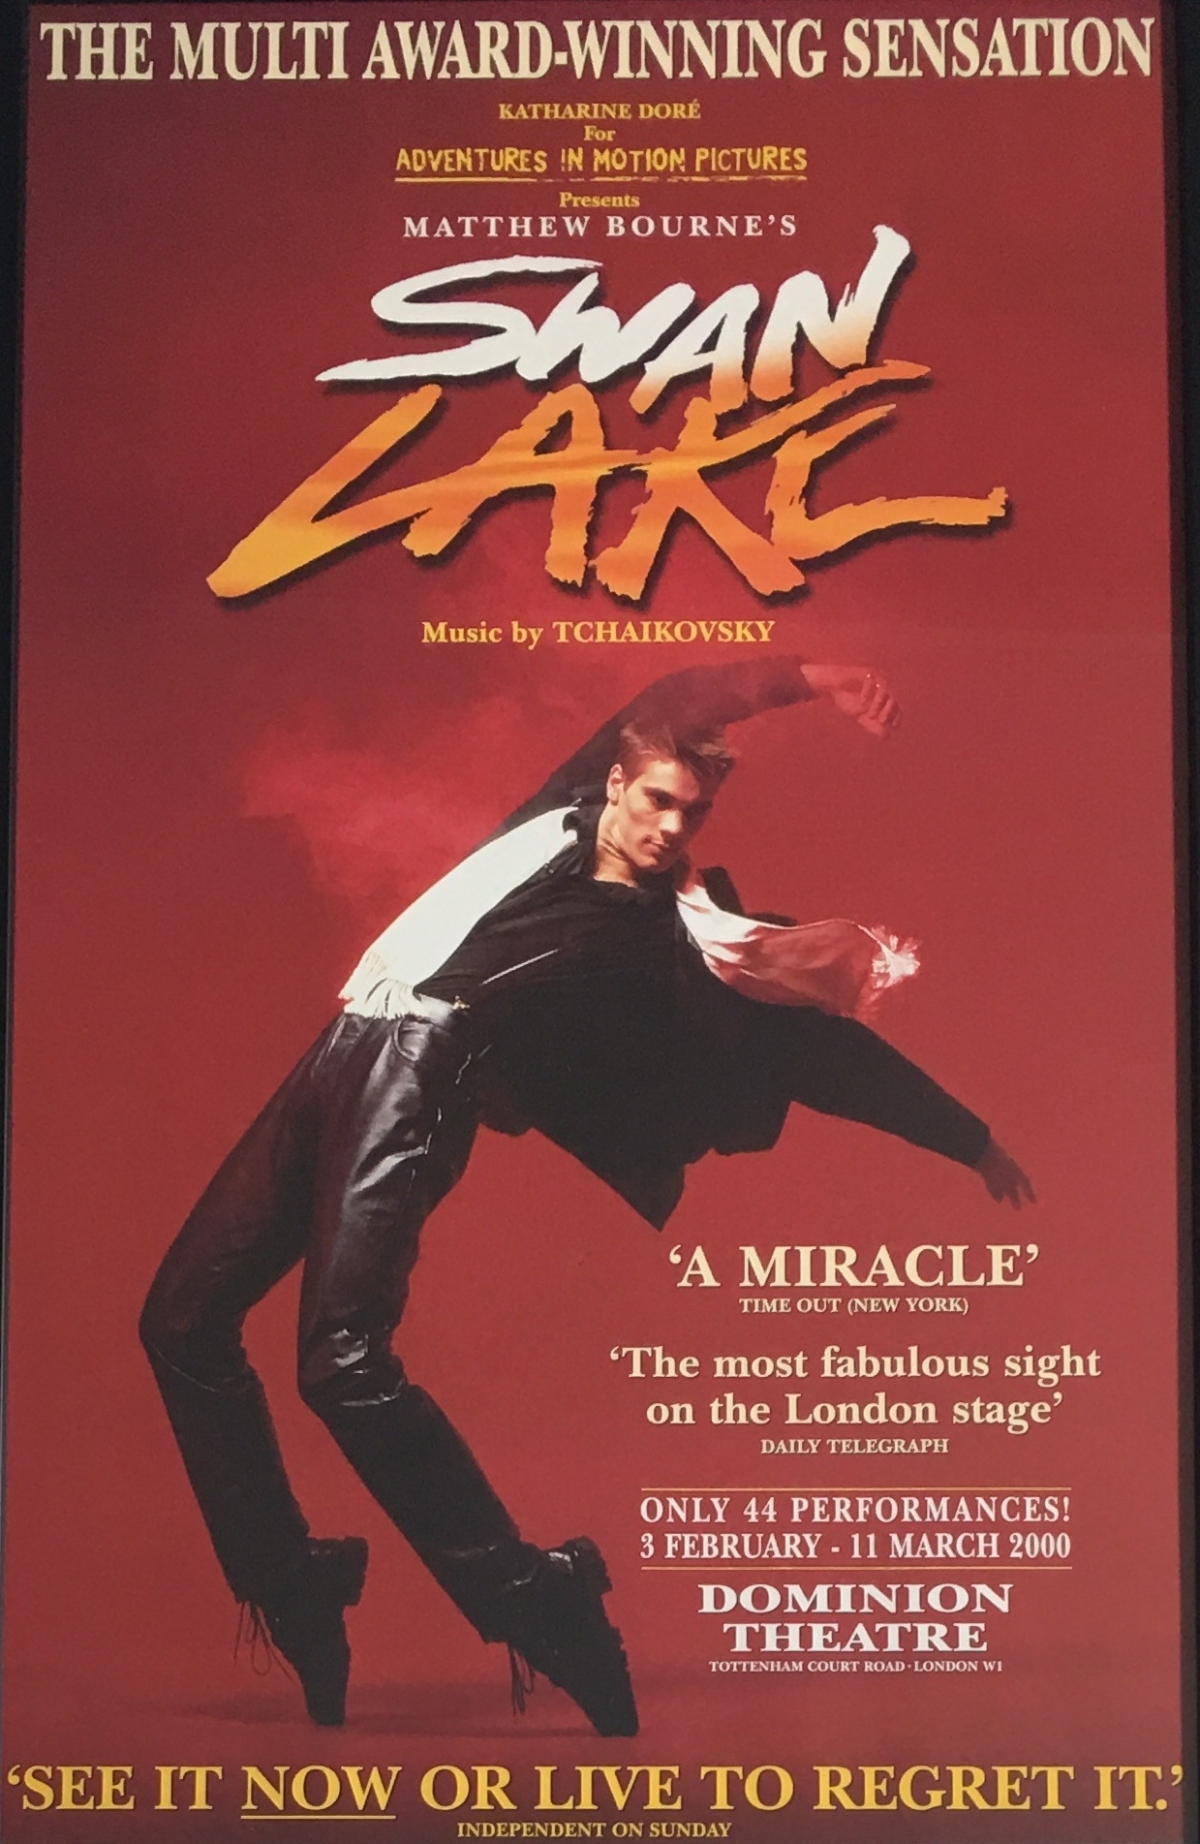 Swan Lake 2000 Poster for the run at the Dominion Theatre in London's West End